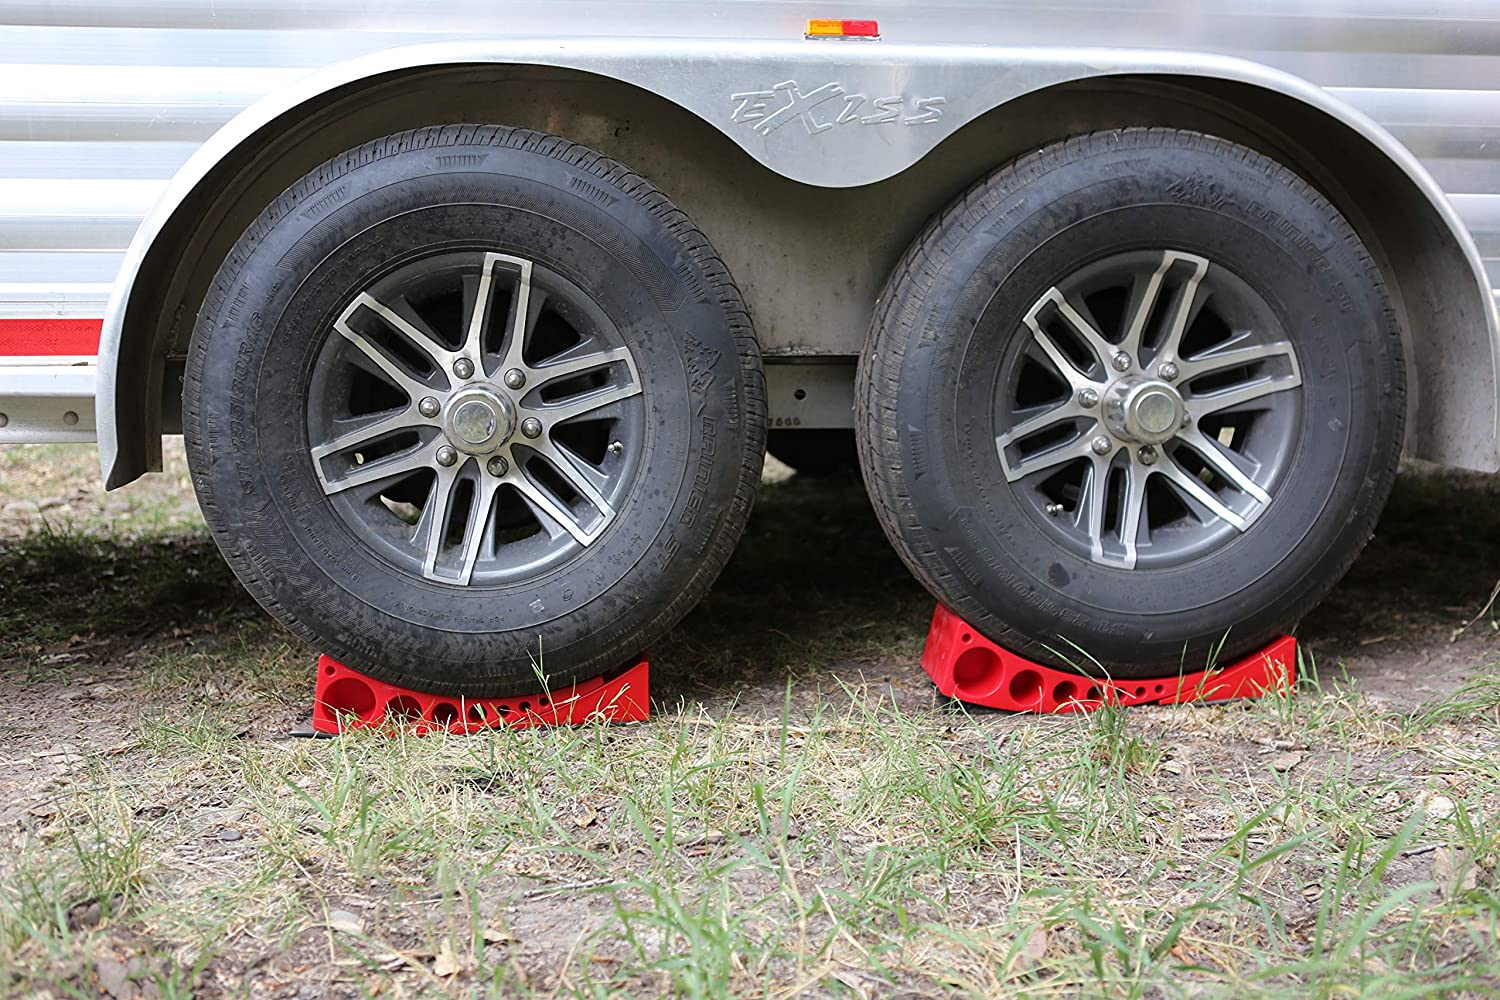 2-Pack Camper Leveler, Chock Kit | Andersen 3604 x2 | Less Than 5 Minutes  to Level Your Camper or Trailer | Levelers for RV | Simply Drive On  Chock